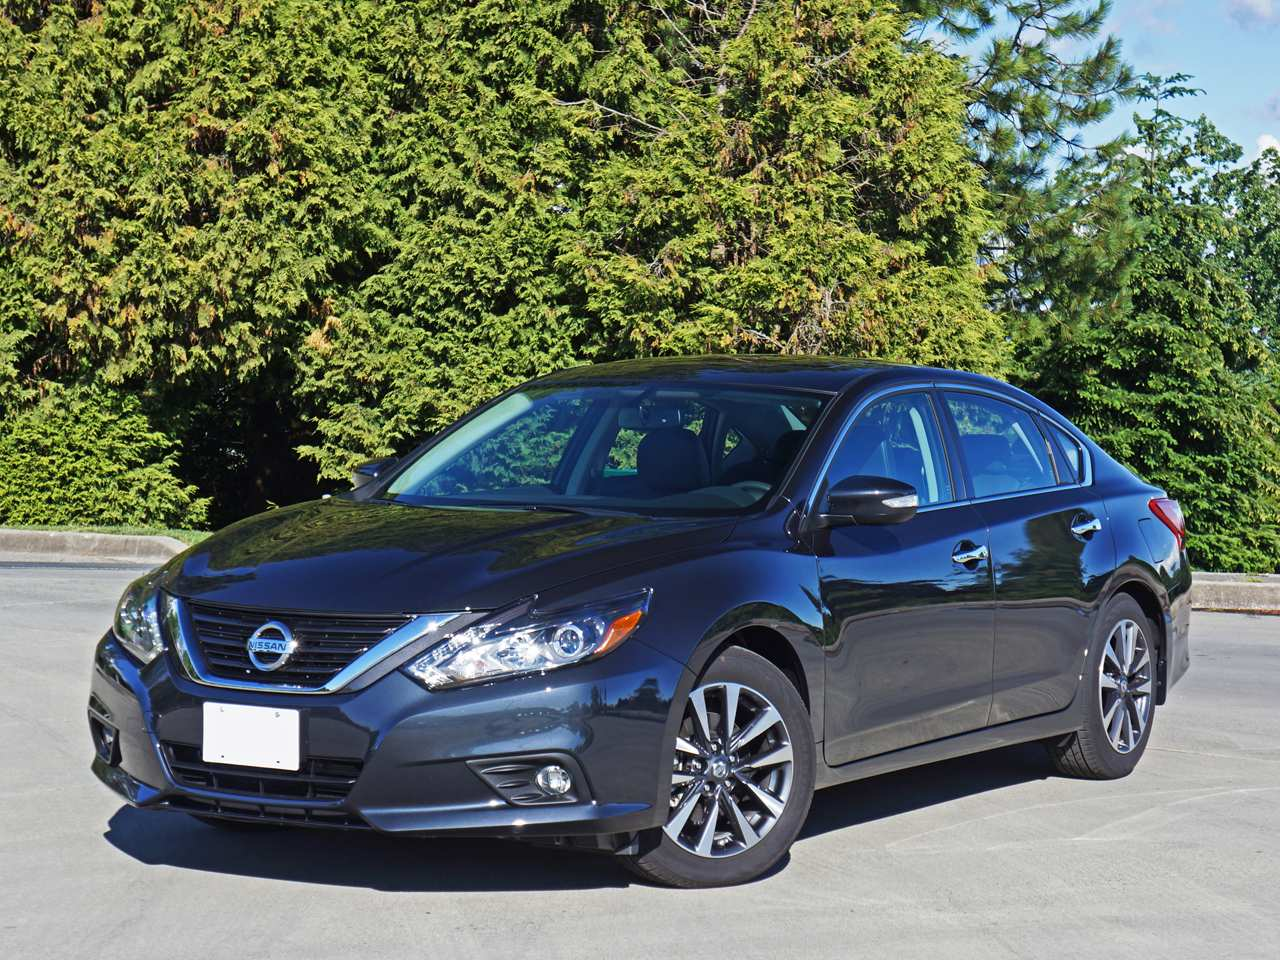 72 Gallery of 2017 Nissan Altima Review New Review by 2017 Nissan Altima Review